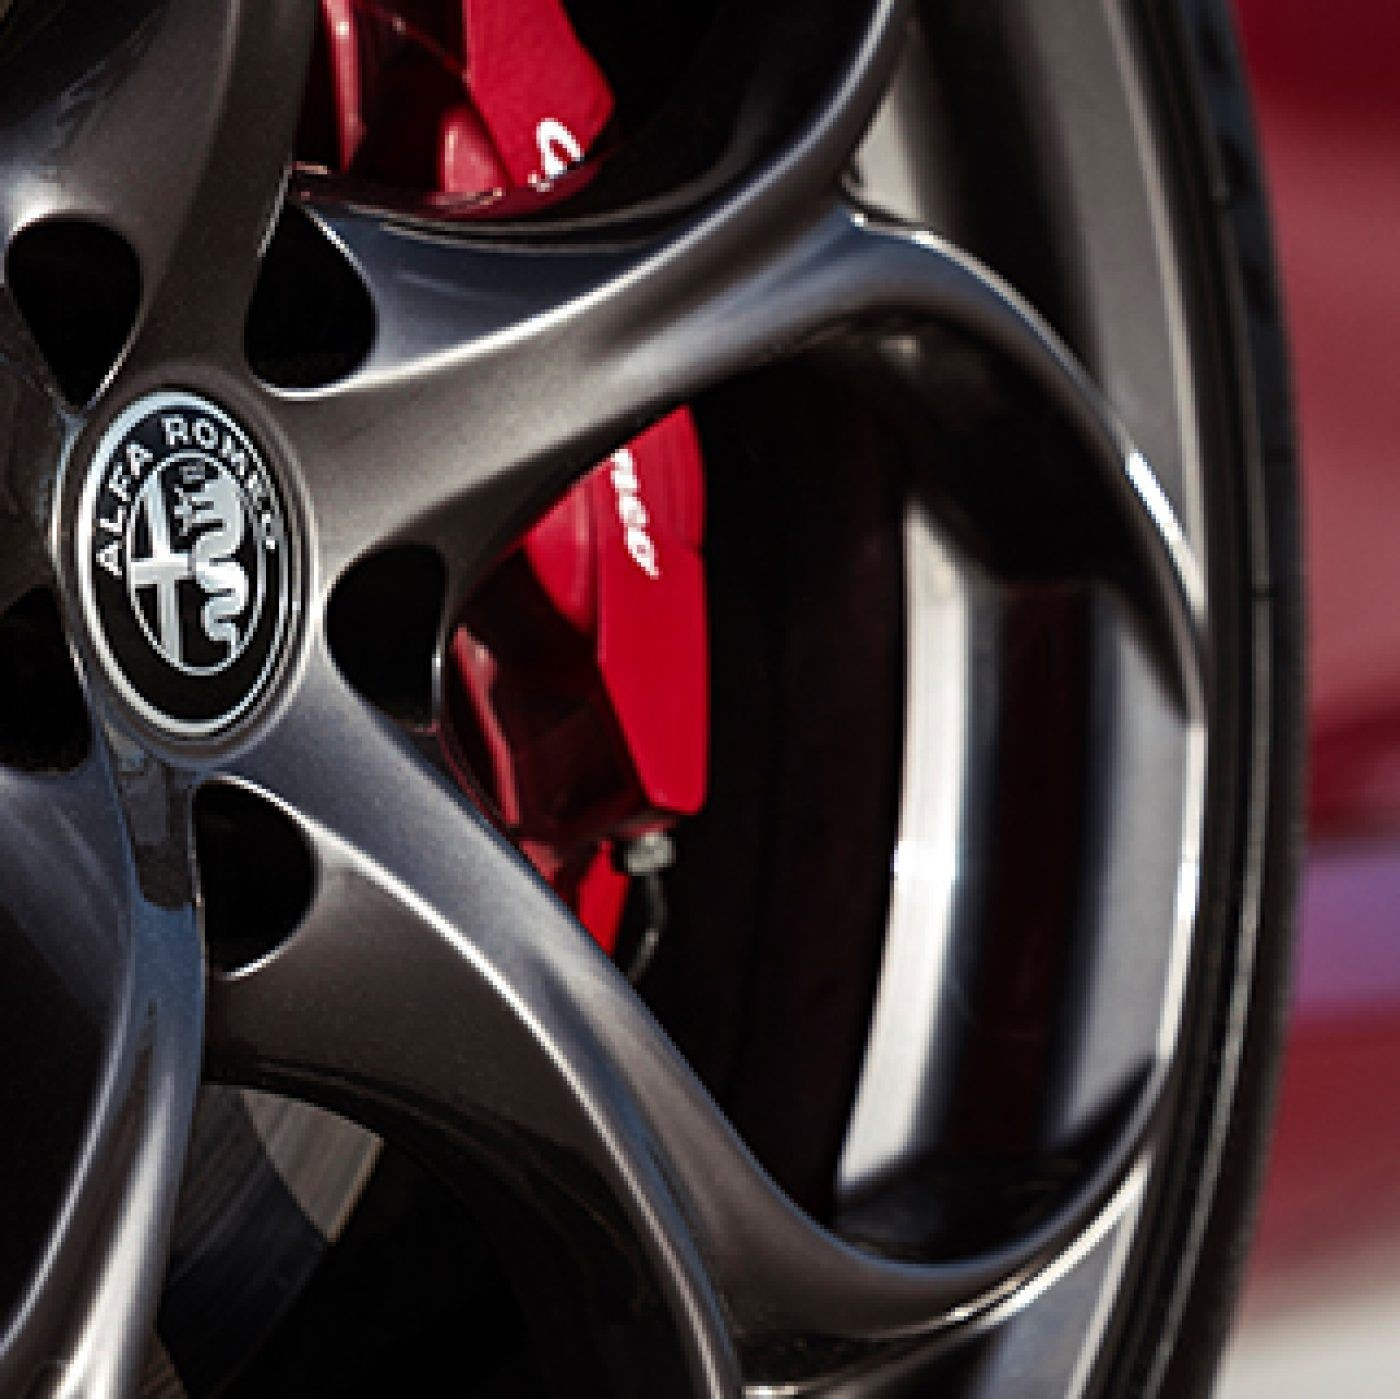 The Y-spoke aluminum wheels of the red 2019 Alfa Romeo Giulia